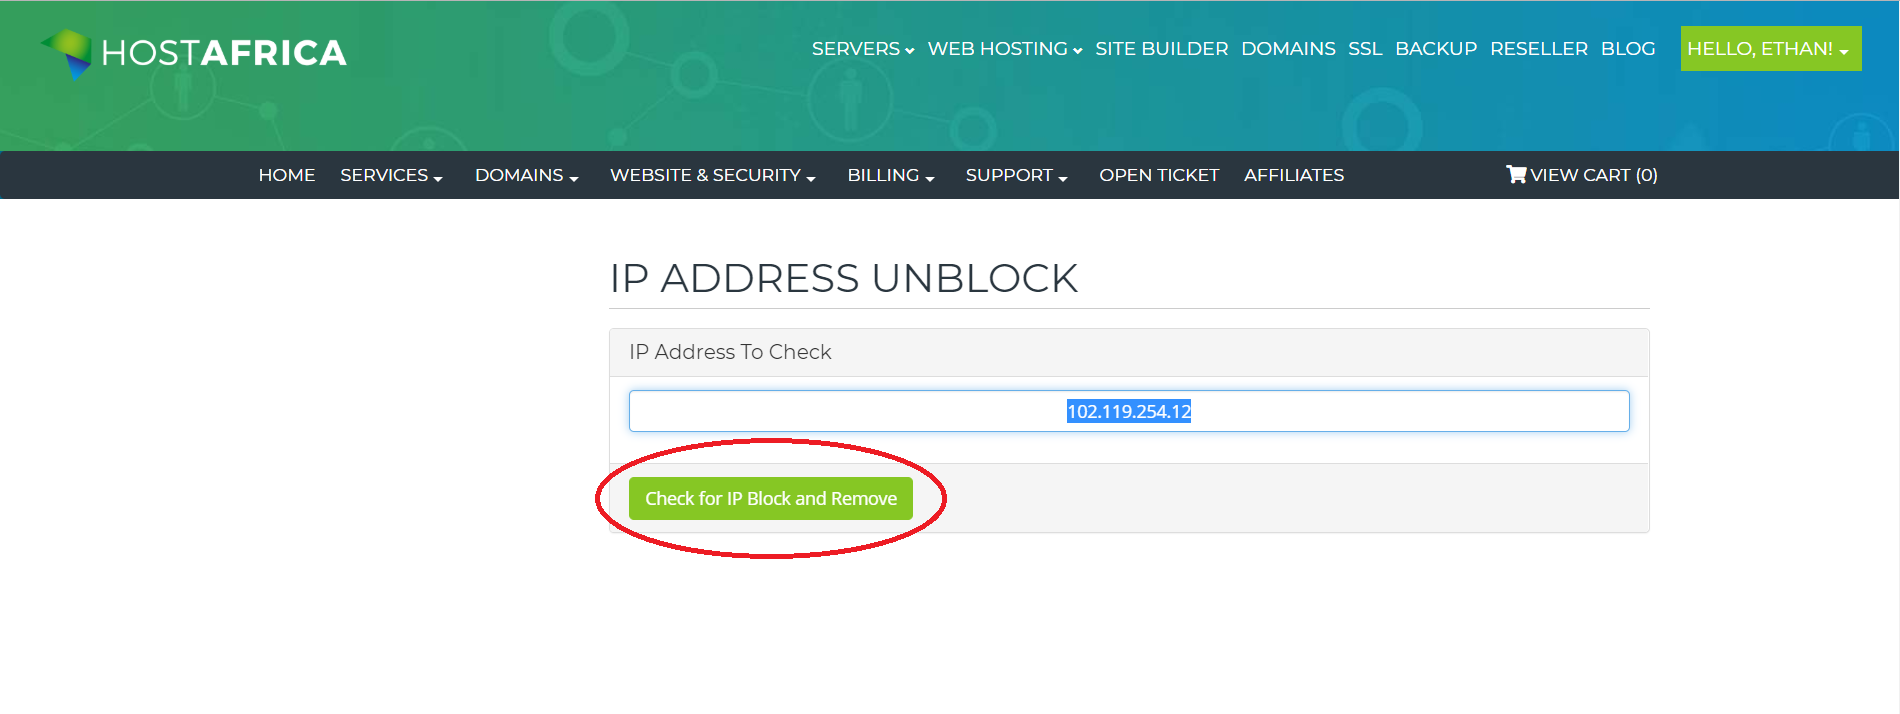 check for IP block and remove